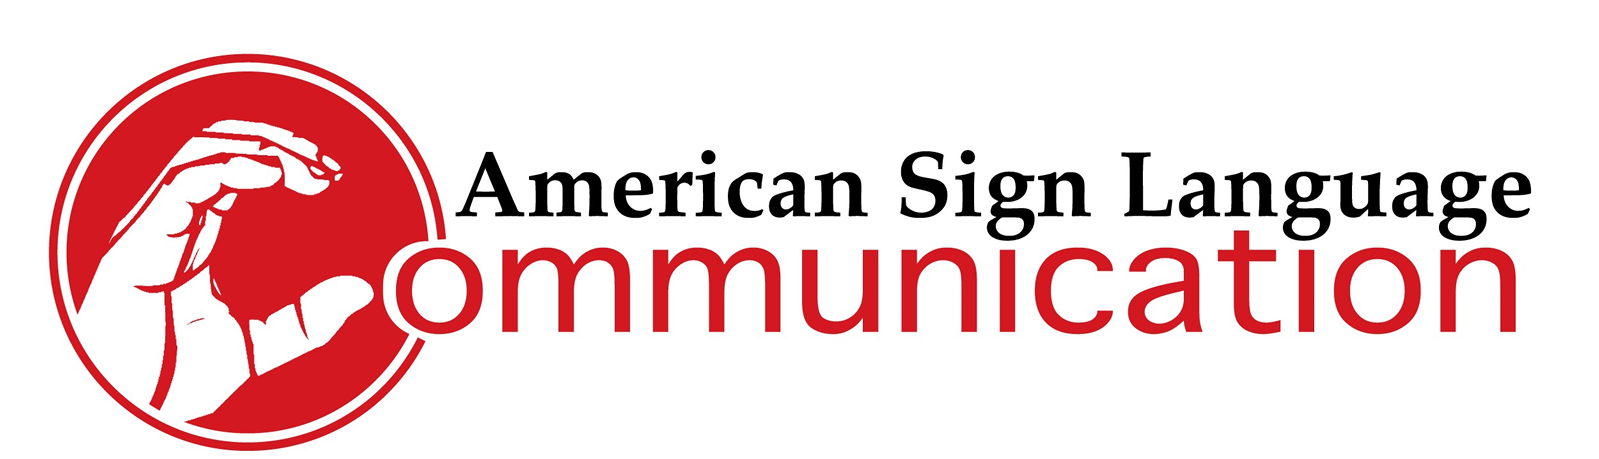 ASL Communication logo (finger spelled C starts the word Communication)